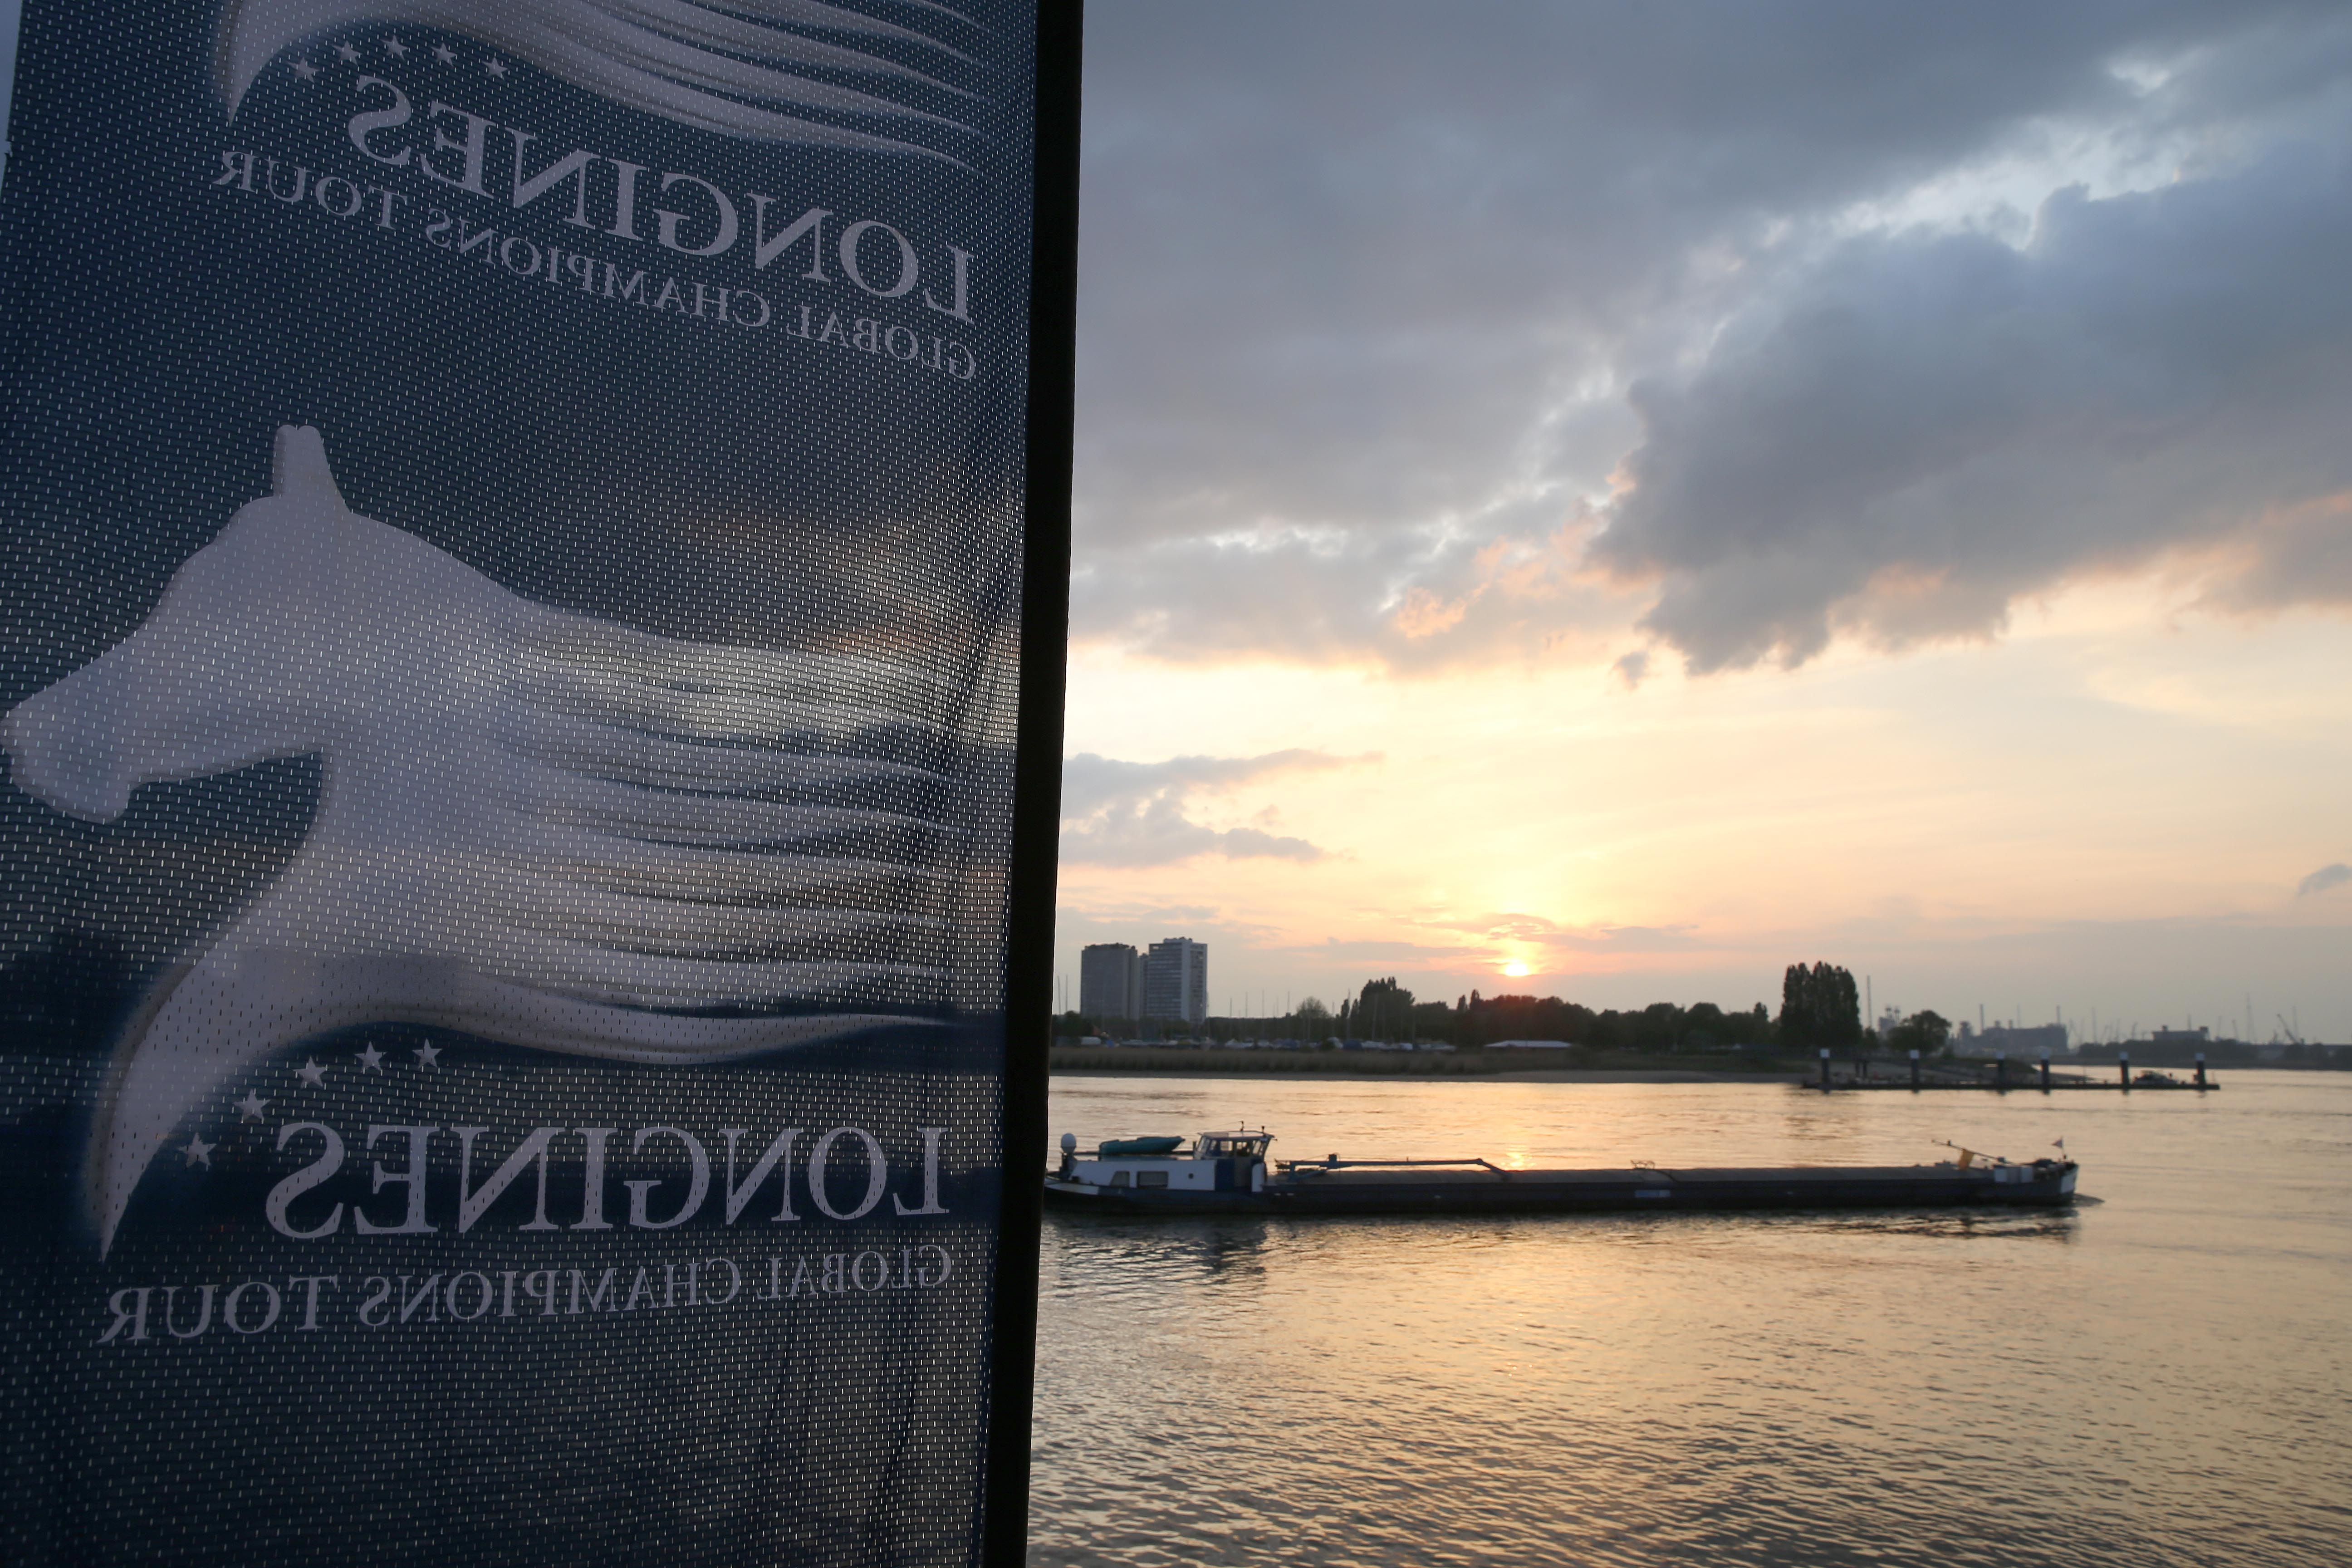 Longines Global Champions Tour arrives in beautiful Antwerp for the first time #showjumping